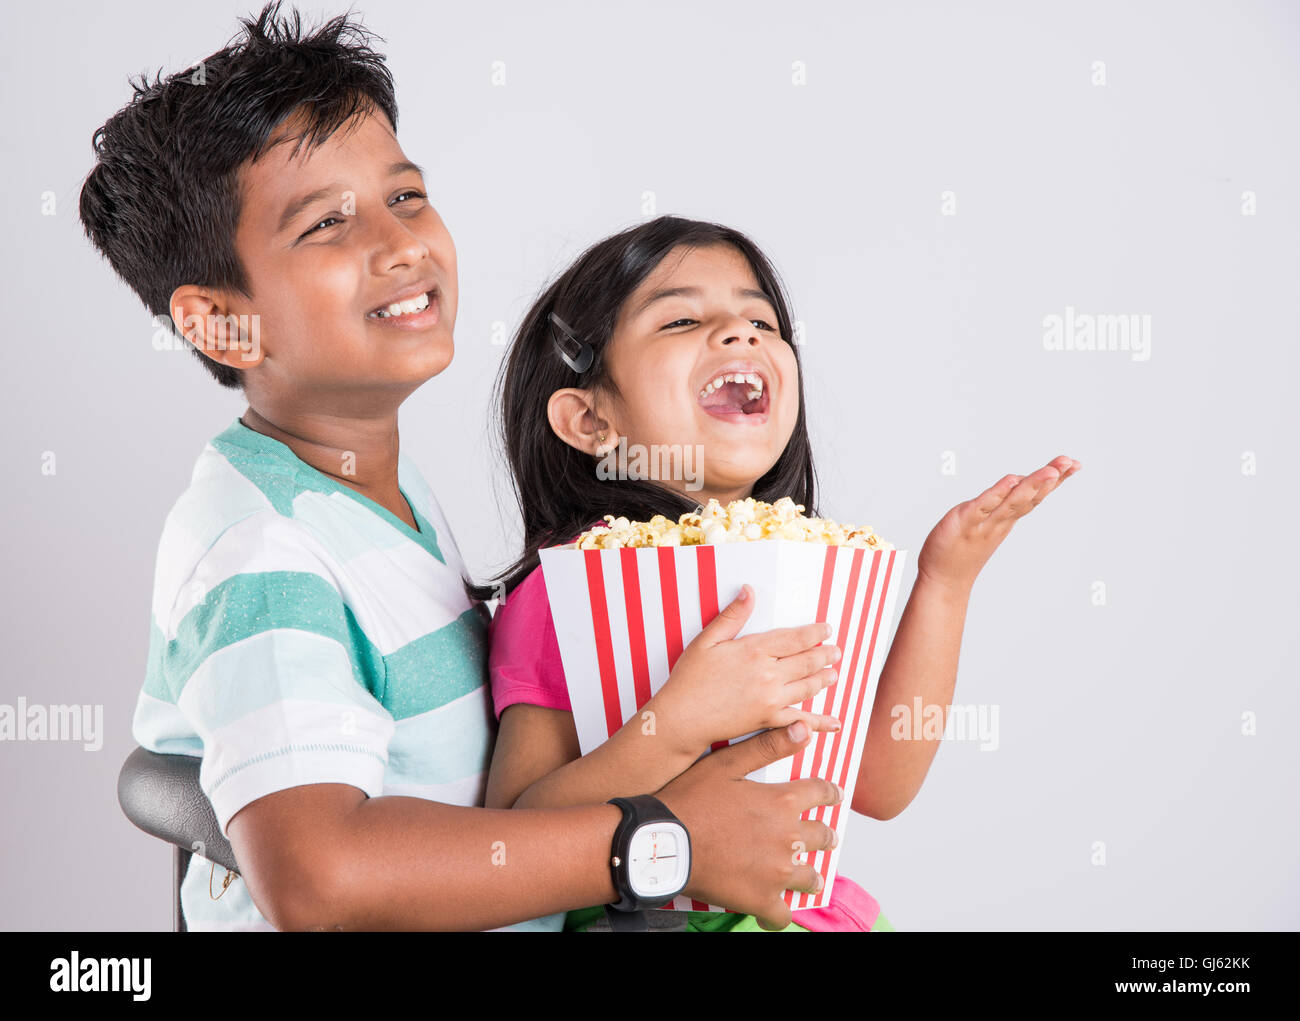 Indian Cute Girl And Boy Eating Popcorn Asian Kids And Popcorn Little Girl And Little Boy Enjoy Eating Popcorn And Tv